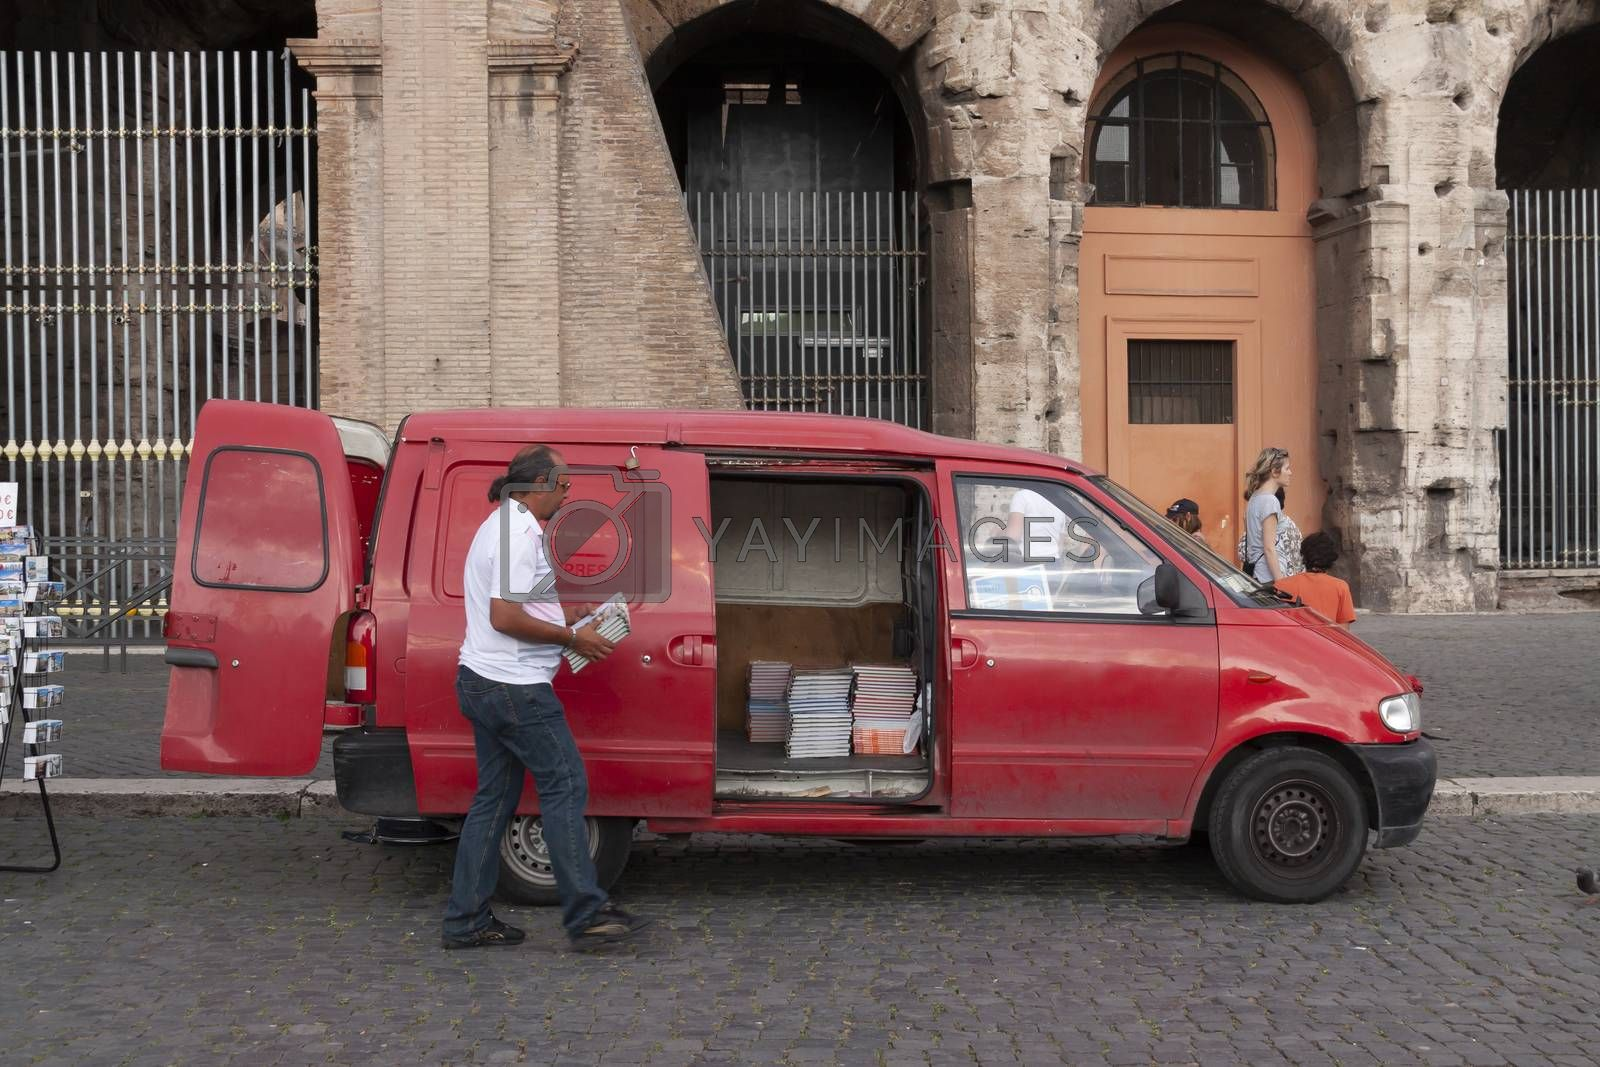 Rome, Italy - June 27, 2010: A man collects maps and guides in a red van, which he has for sale, from a street stall for tourists, next to the Colosseum in Rome.